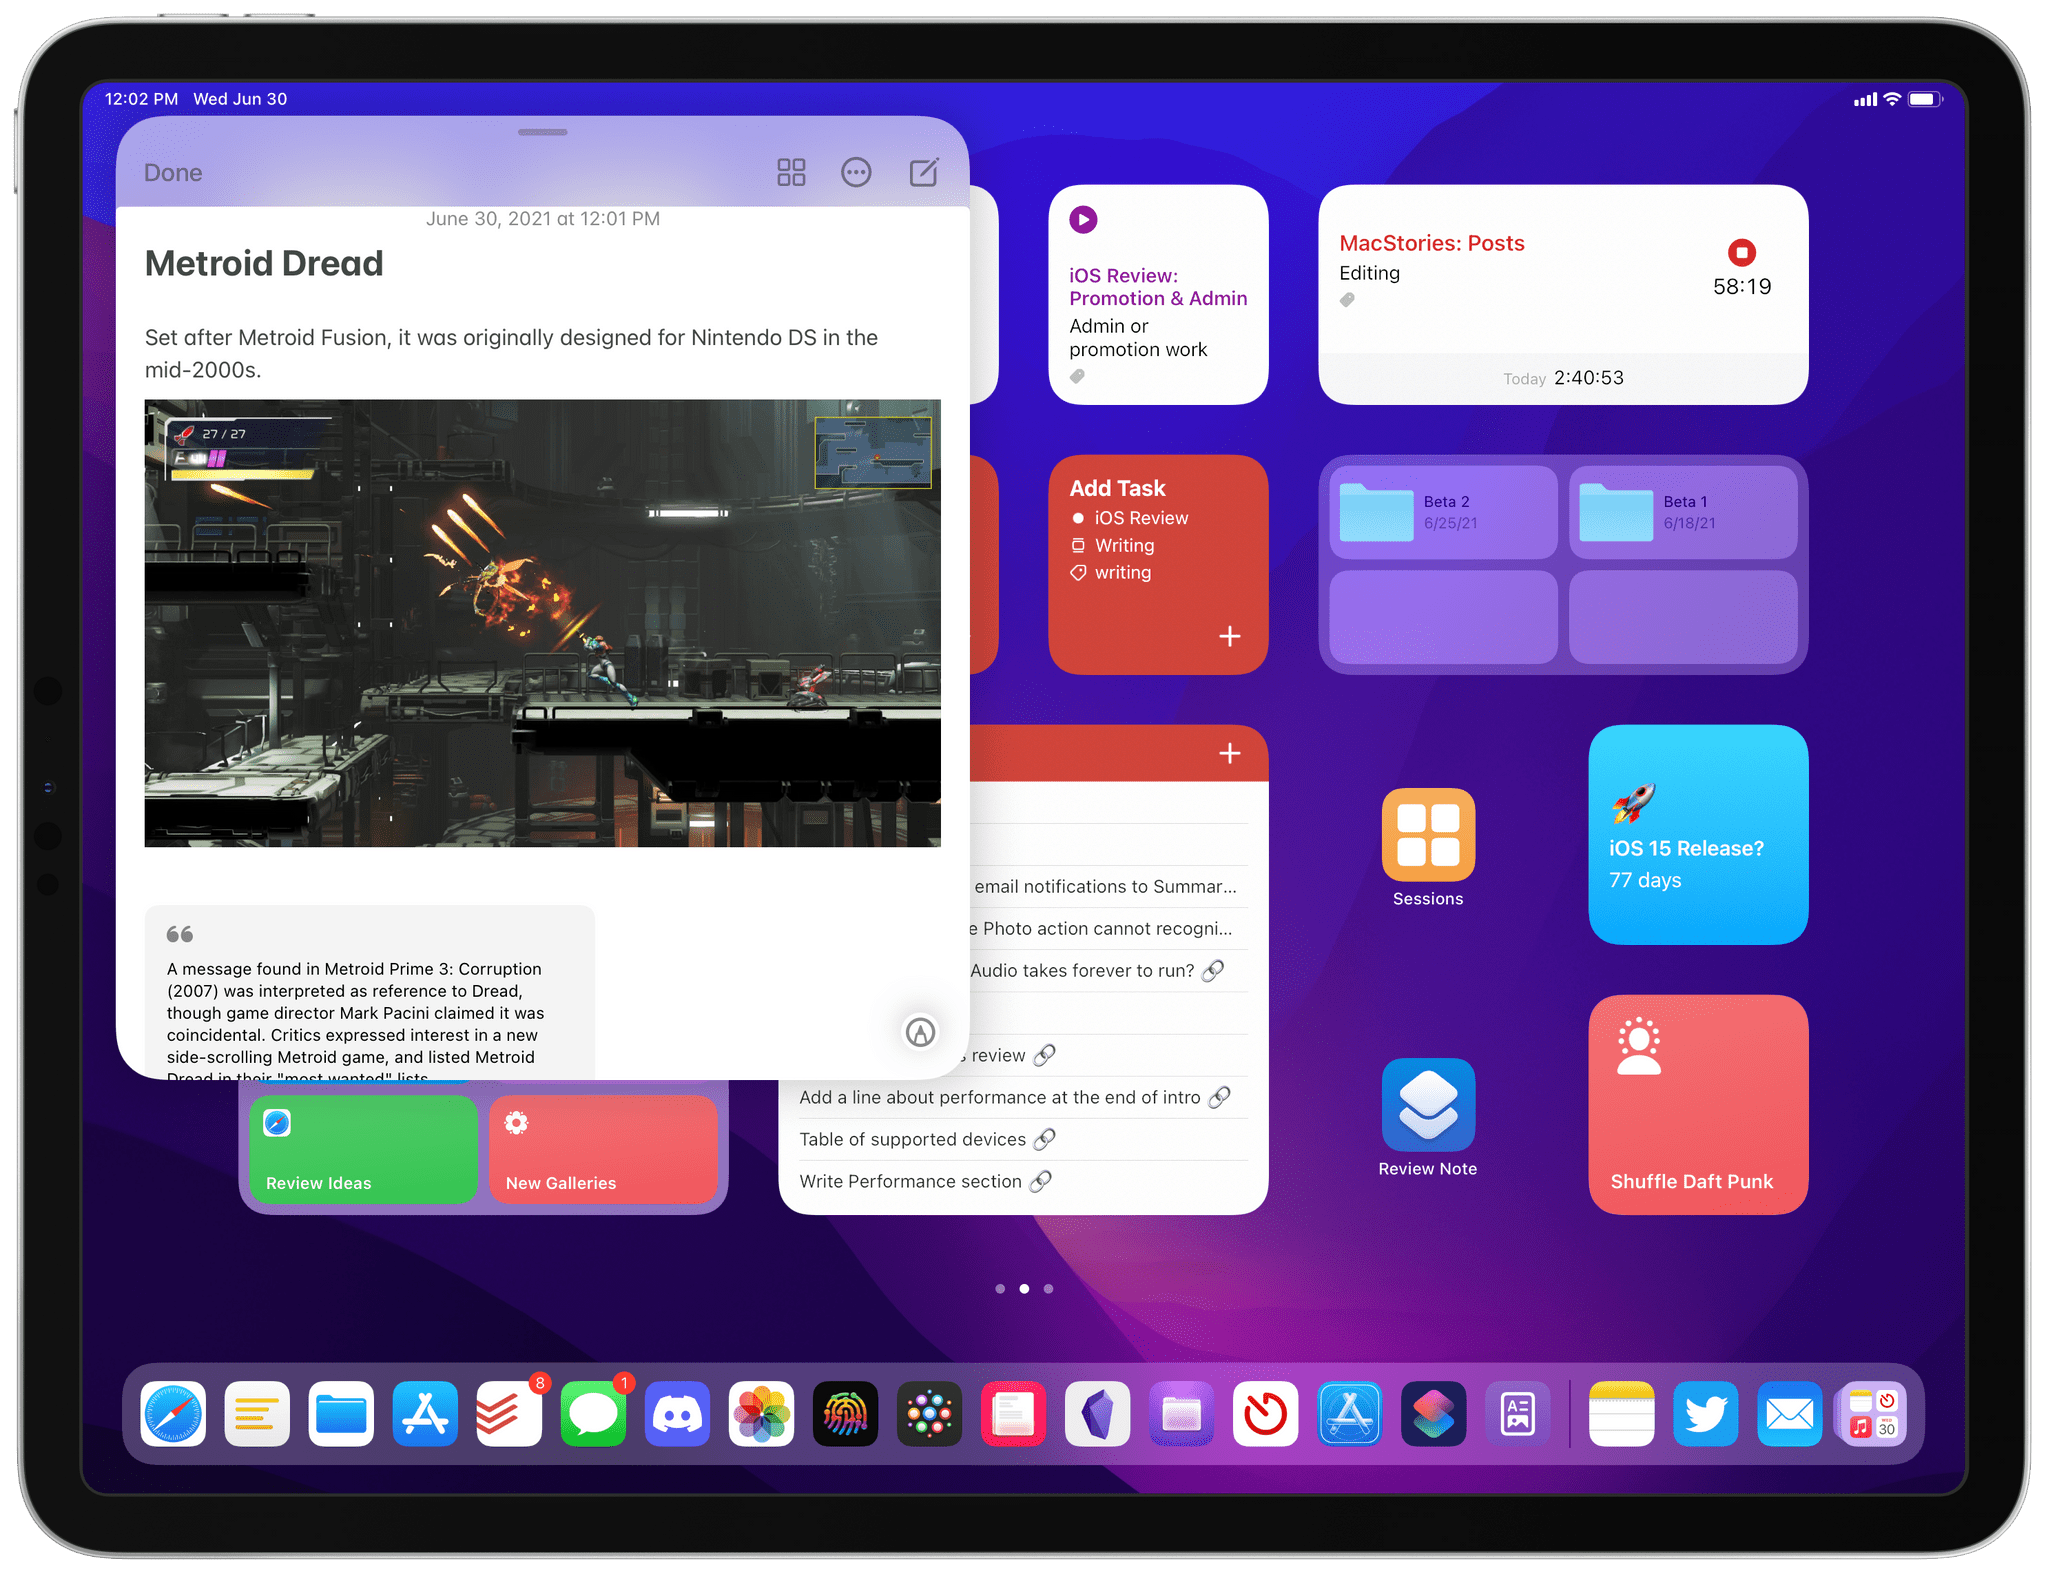 You can resize the Quick Note window and put it anywhere onscreen.